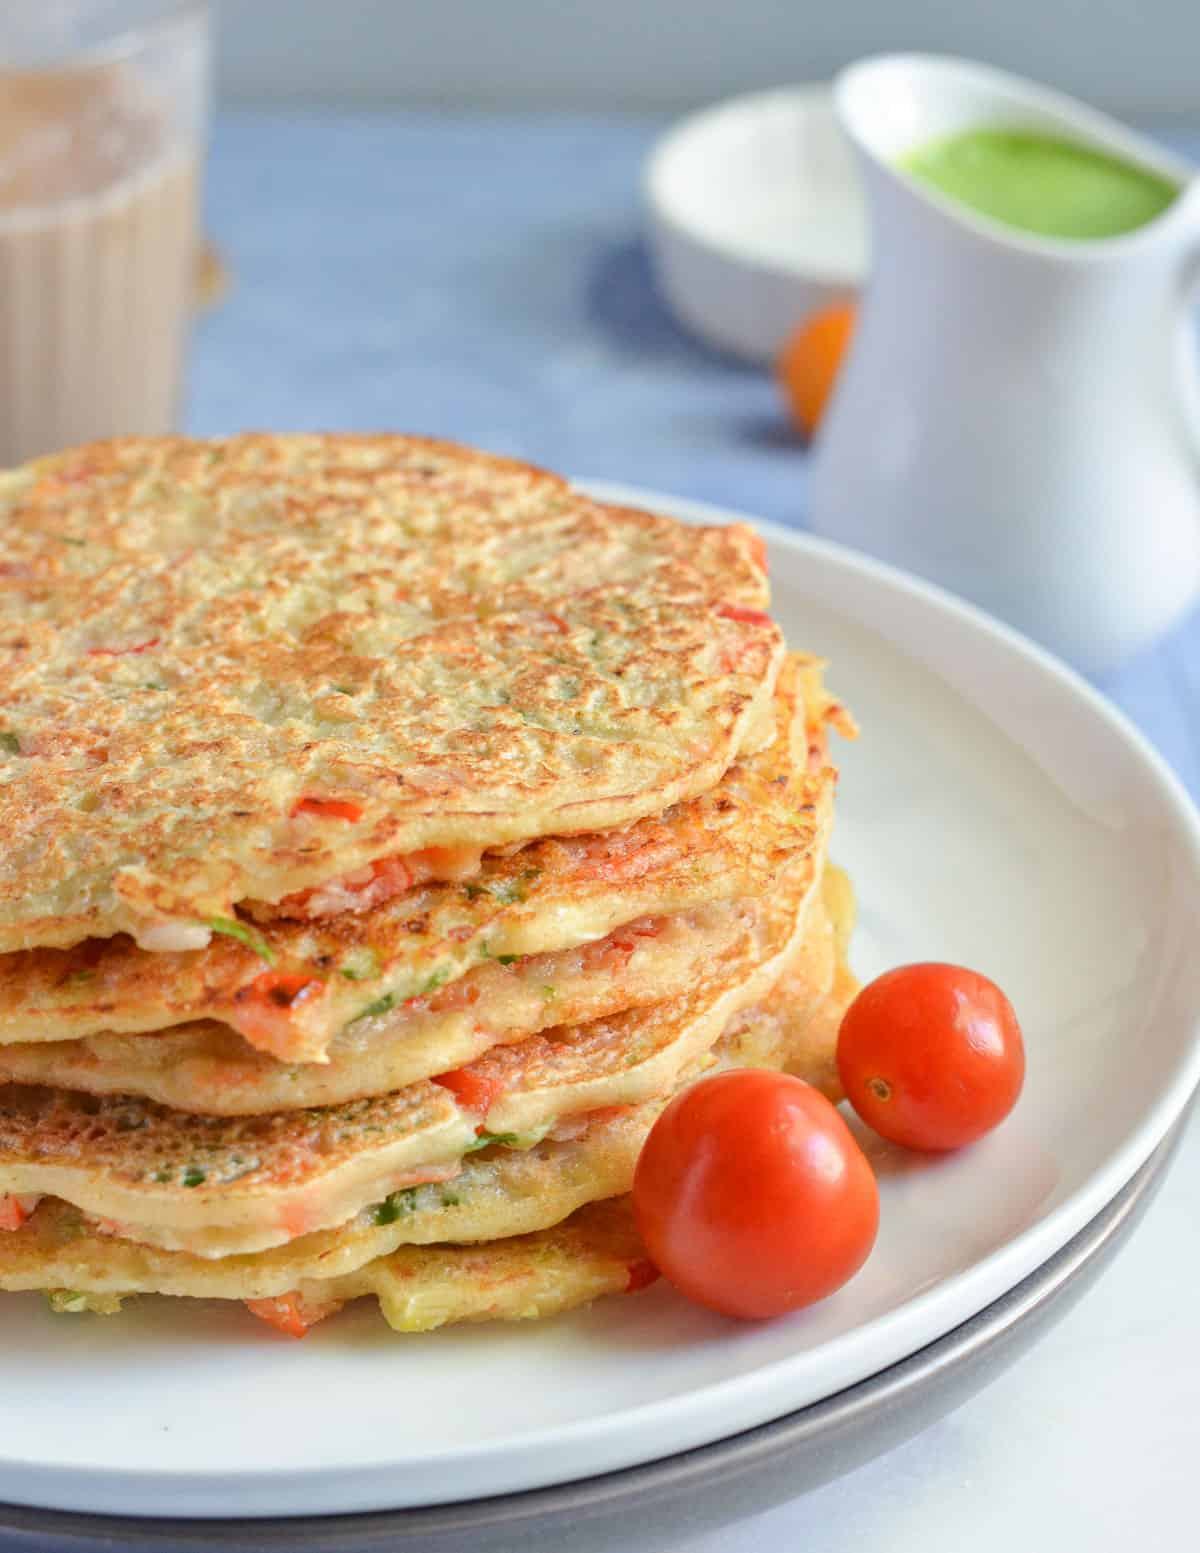 Savoury Vegetable Pancakes with Oats